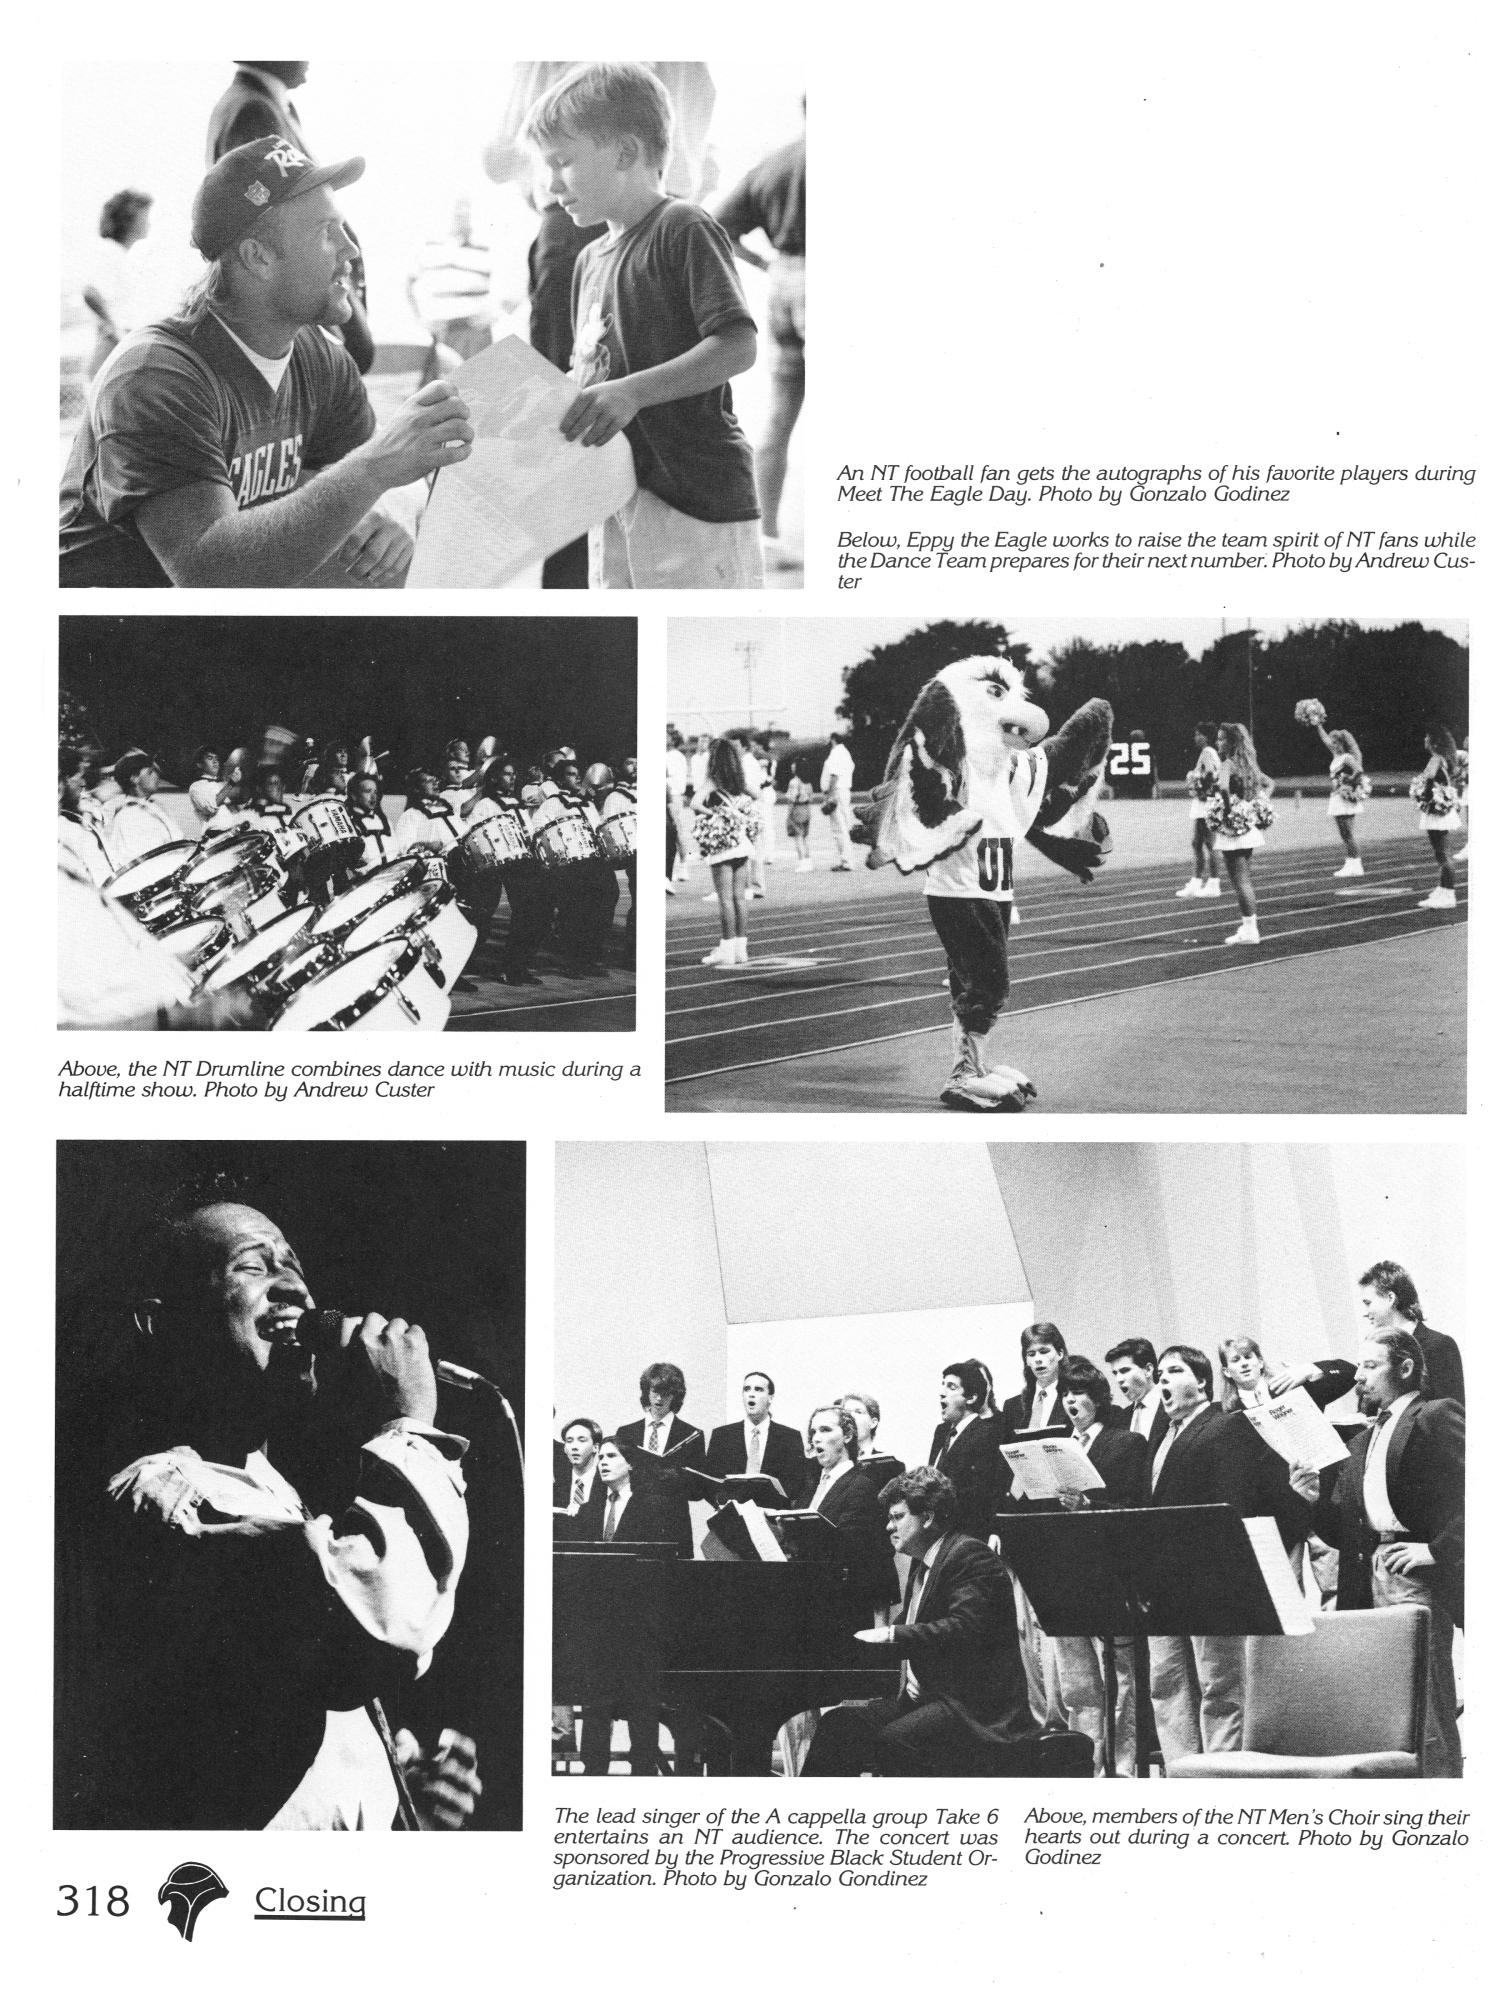 The Aerie, Yearbook of University of North Texas, 1991